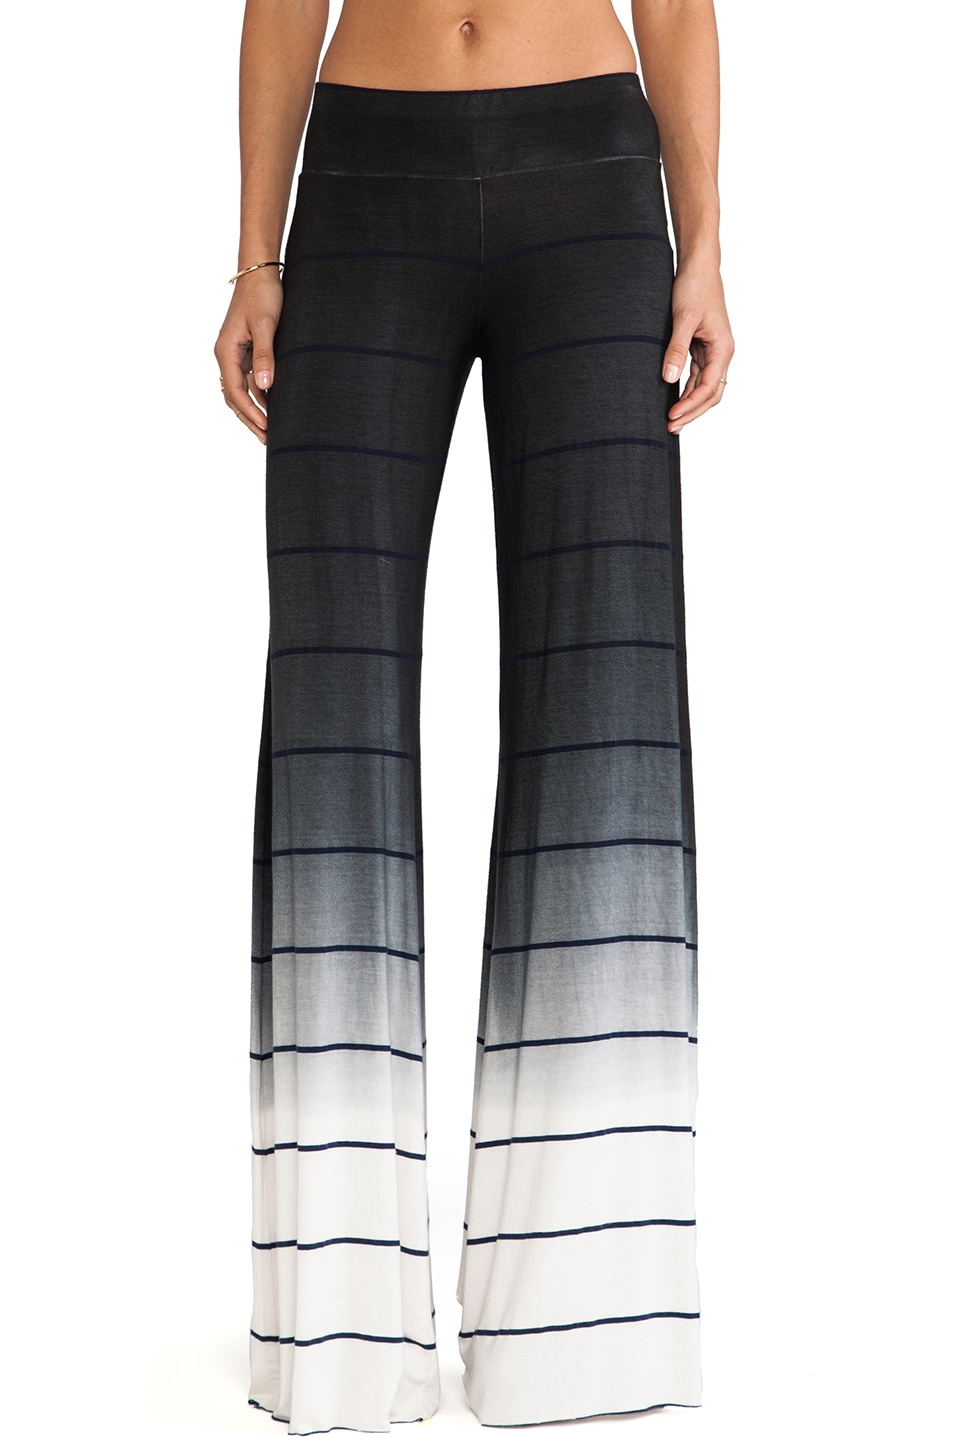 Saint Grace Wide Pant Ombre Stripe in Black OW